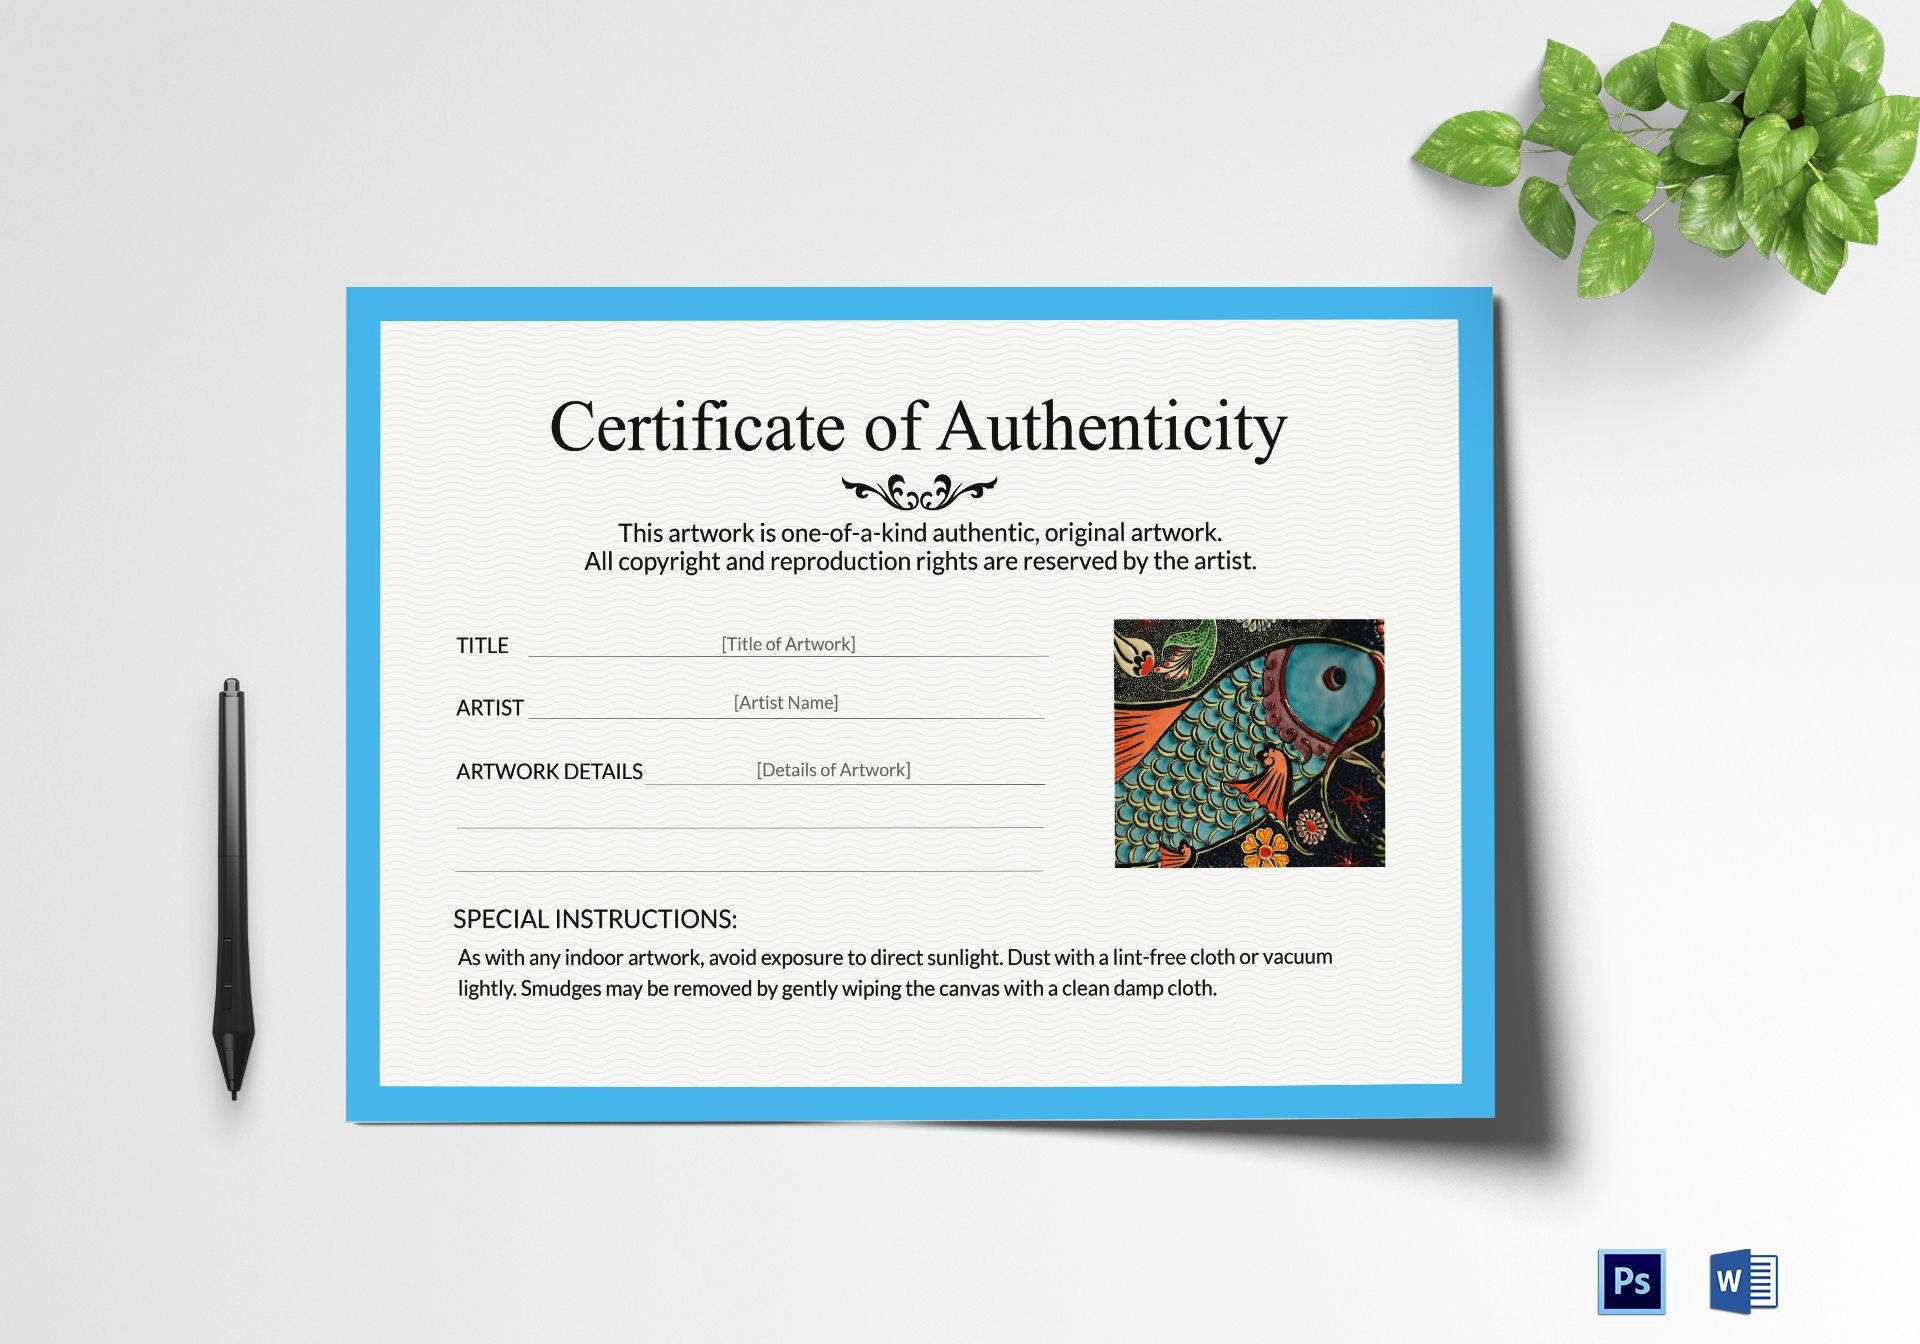 Artwork Certificate Of Authenticity Templates New Artwork Authenticity Certificate Design Template In Psd Word